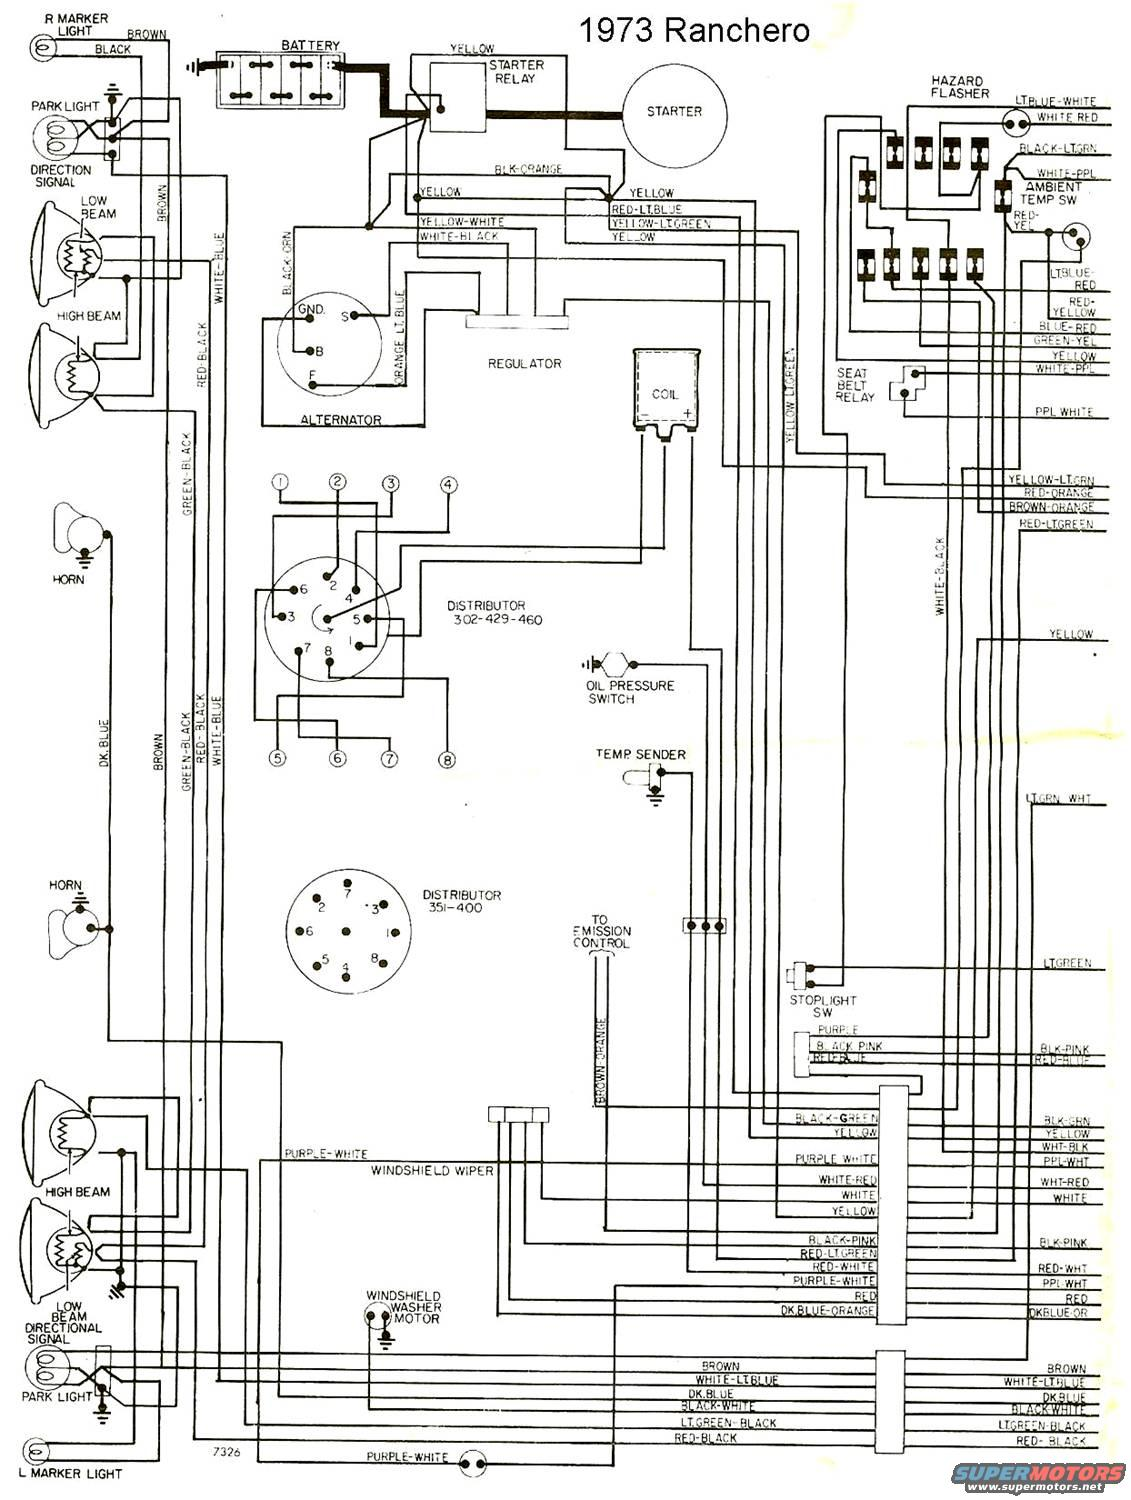 1973 ford ranchero wiring diagram